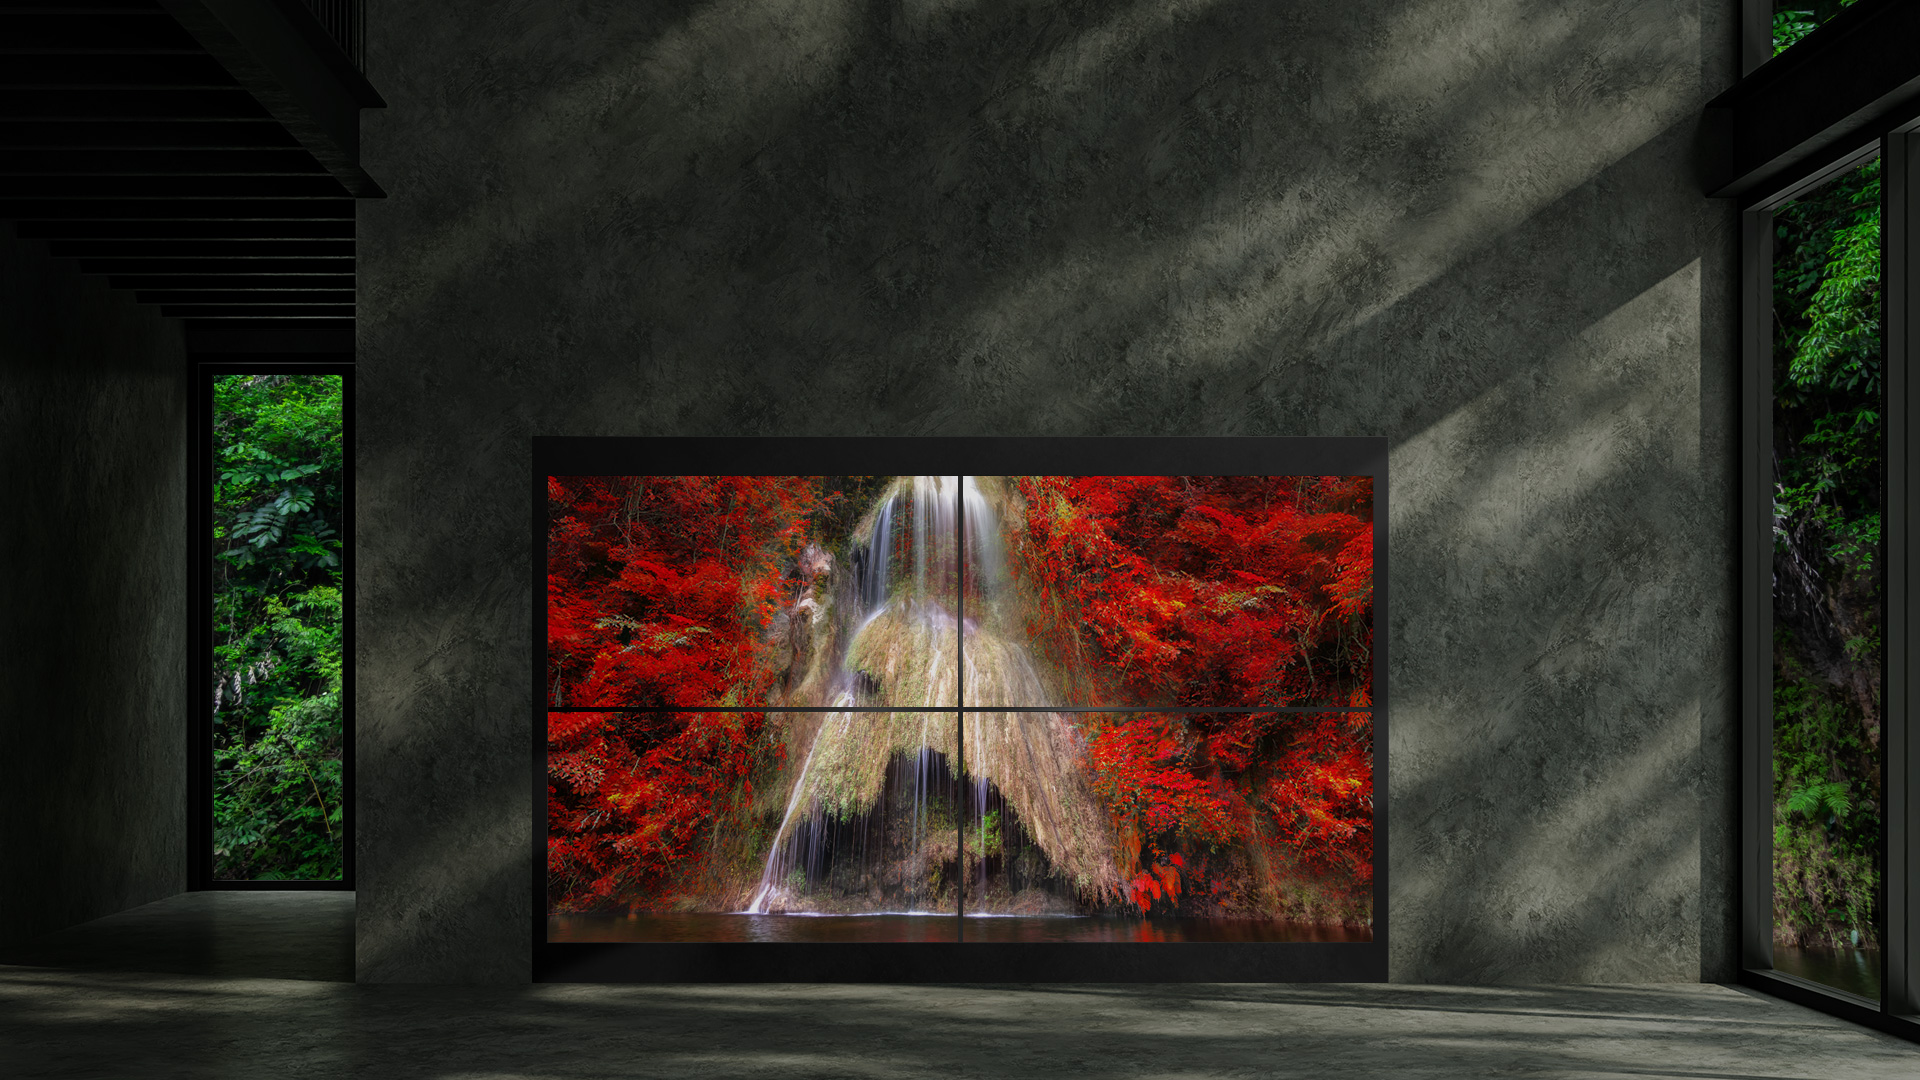 Single Transparent OLED signage displaying an imagery of mountain tree leaves turning into red with the view of the waterfall in the middle.